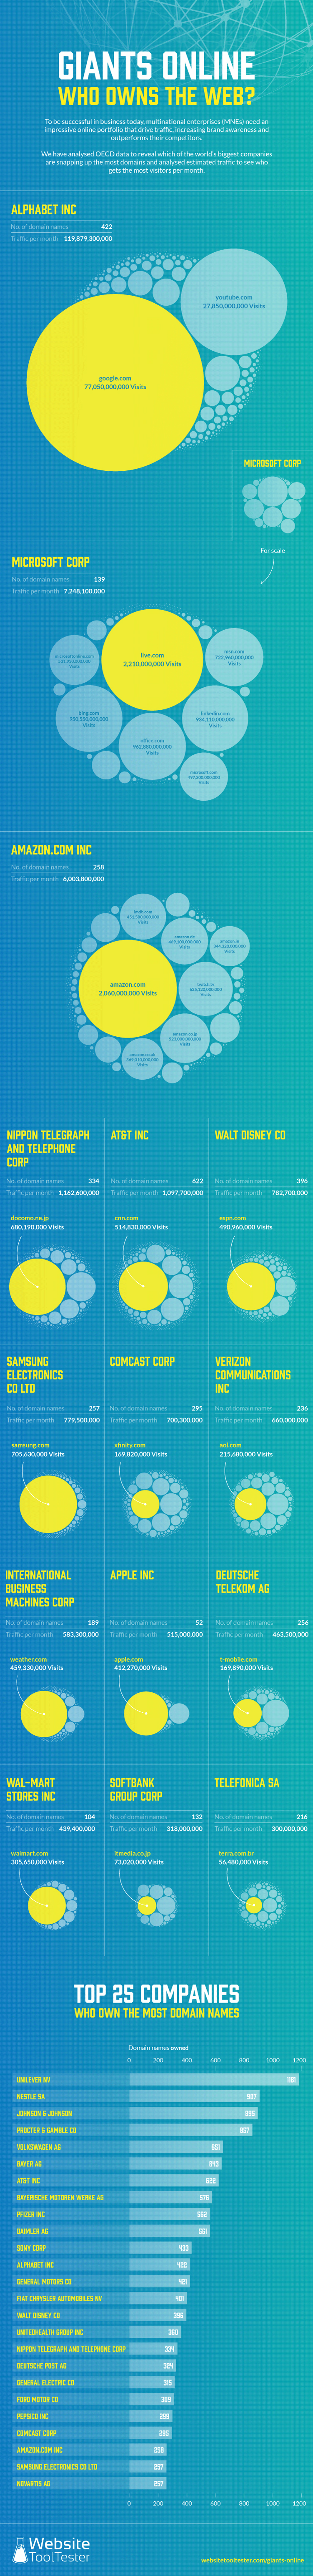 Infographic lists brands with the most domain names